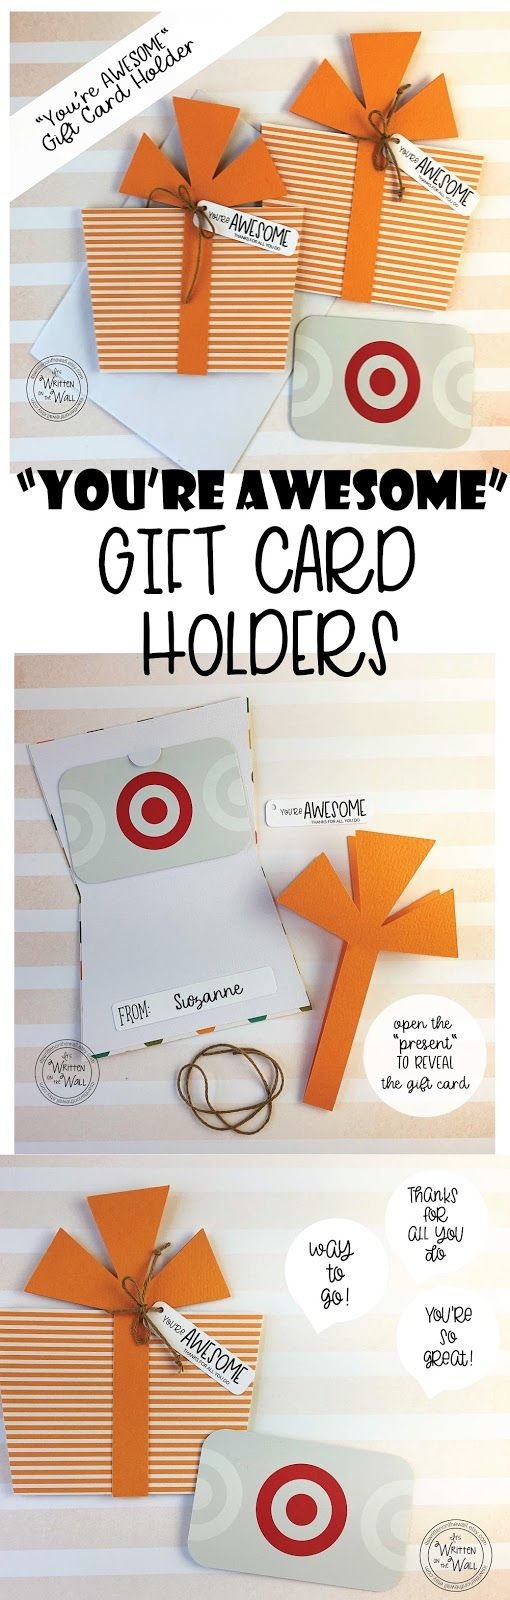 GIFT CARD HOLDERS for Teacher Appreciation, Employee Recognition, Co-Worker gifts, Corporate Gifts, Recognition gifts